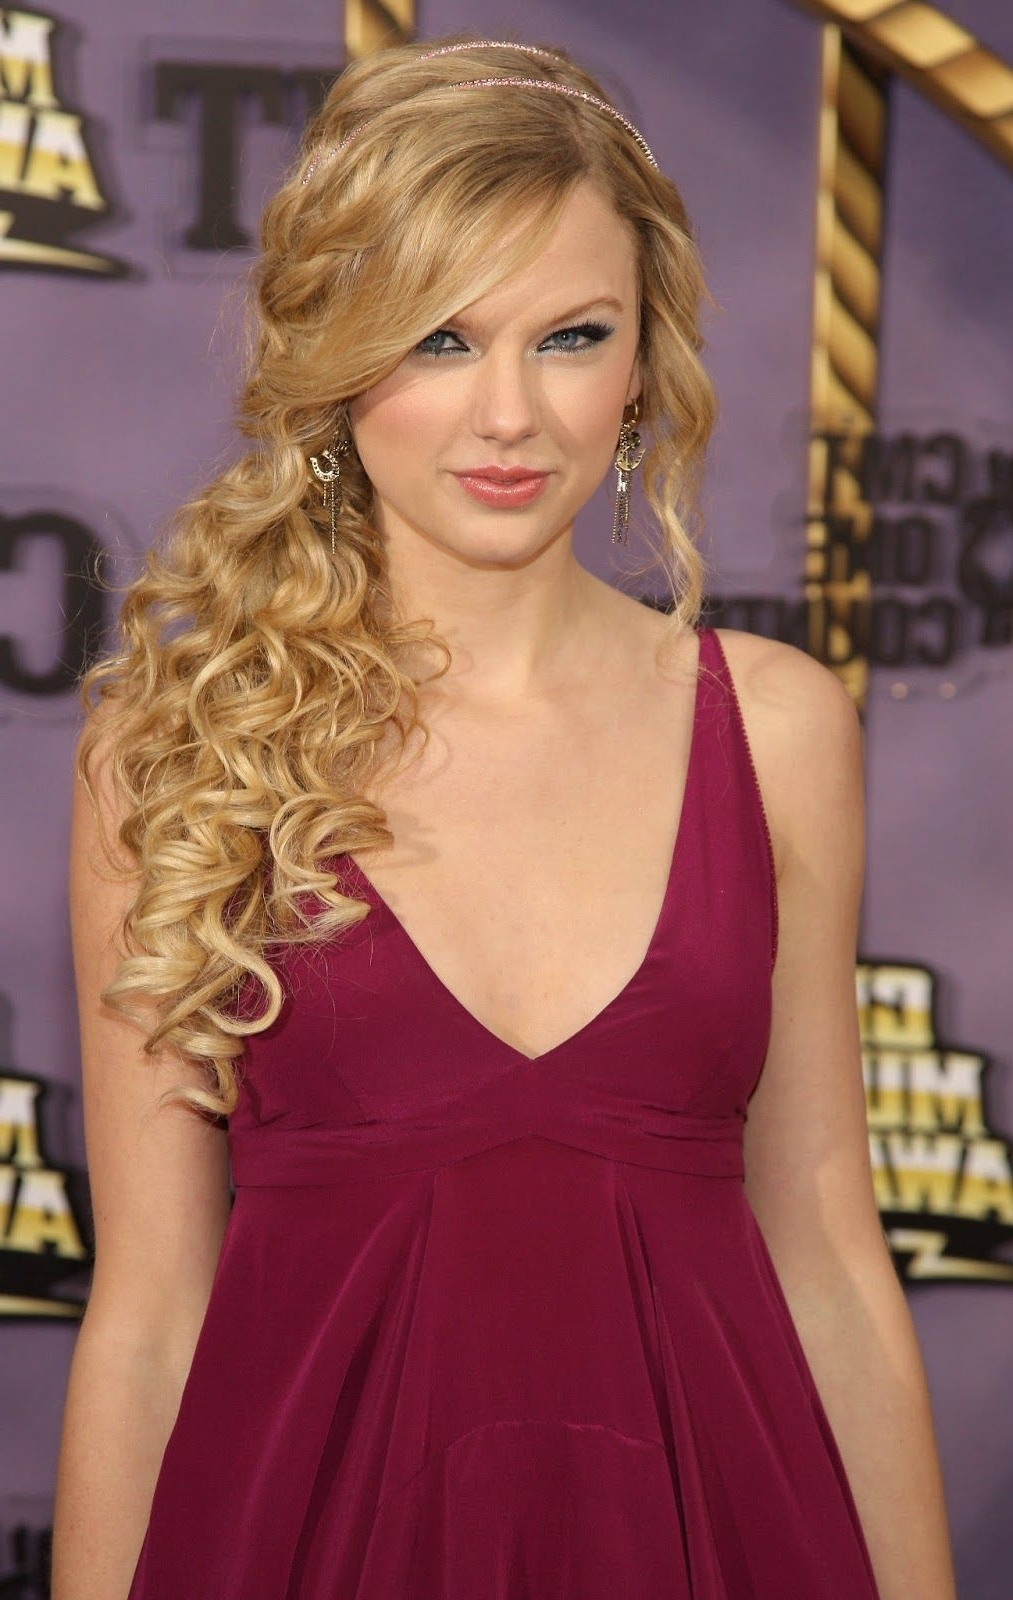 Cute Hairstyles For Prom Inspiredcelebrities : Modern Inside Newest Asymmetrical Curly Ponytail Hairstyles (View 7 of 20)